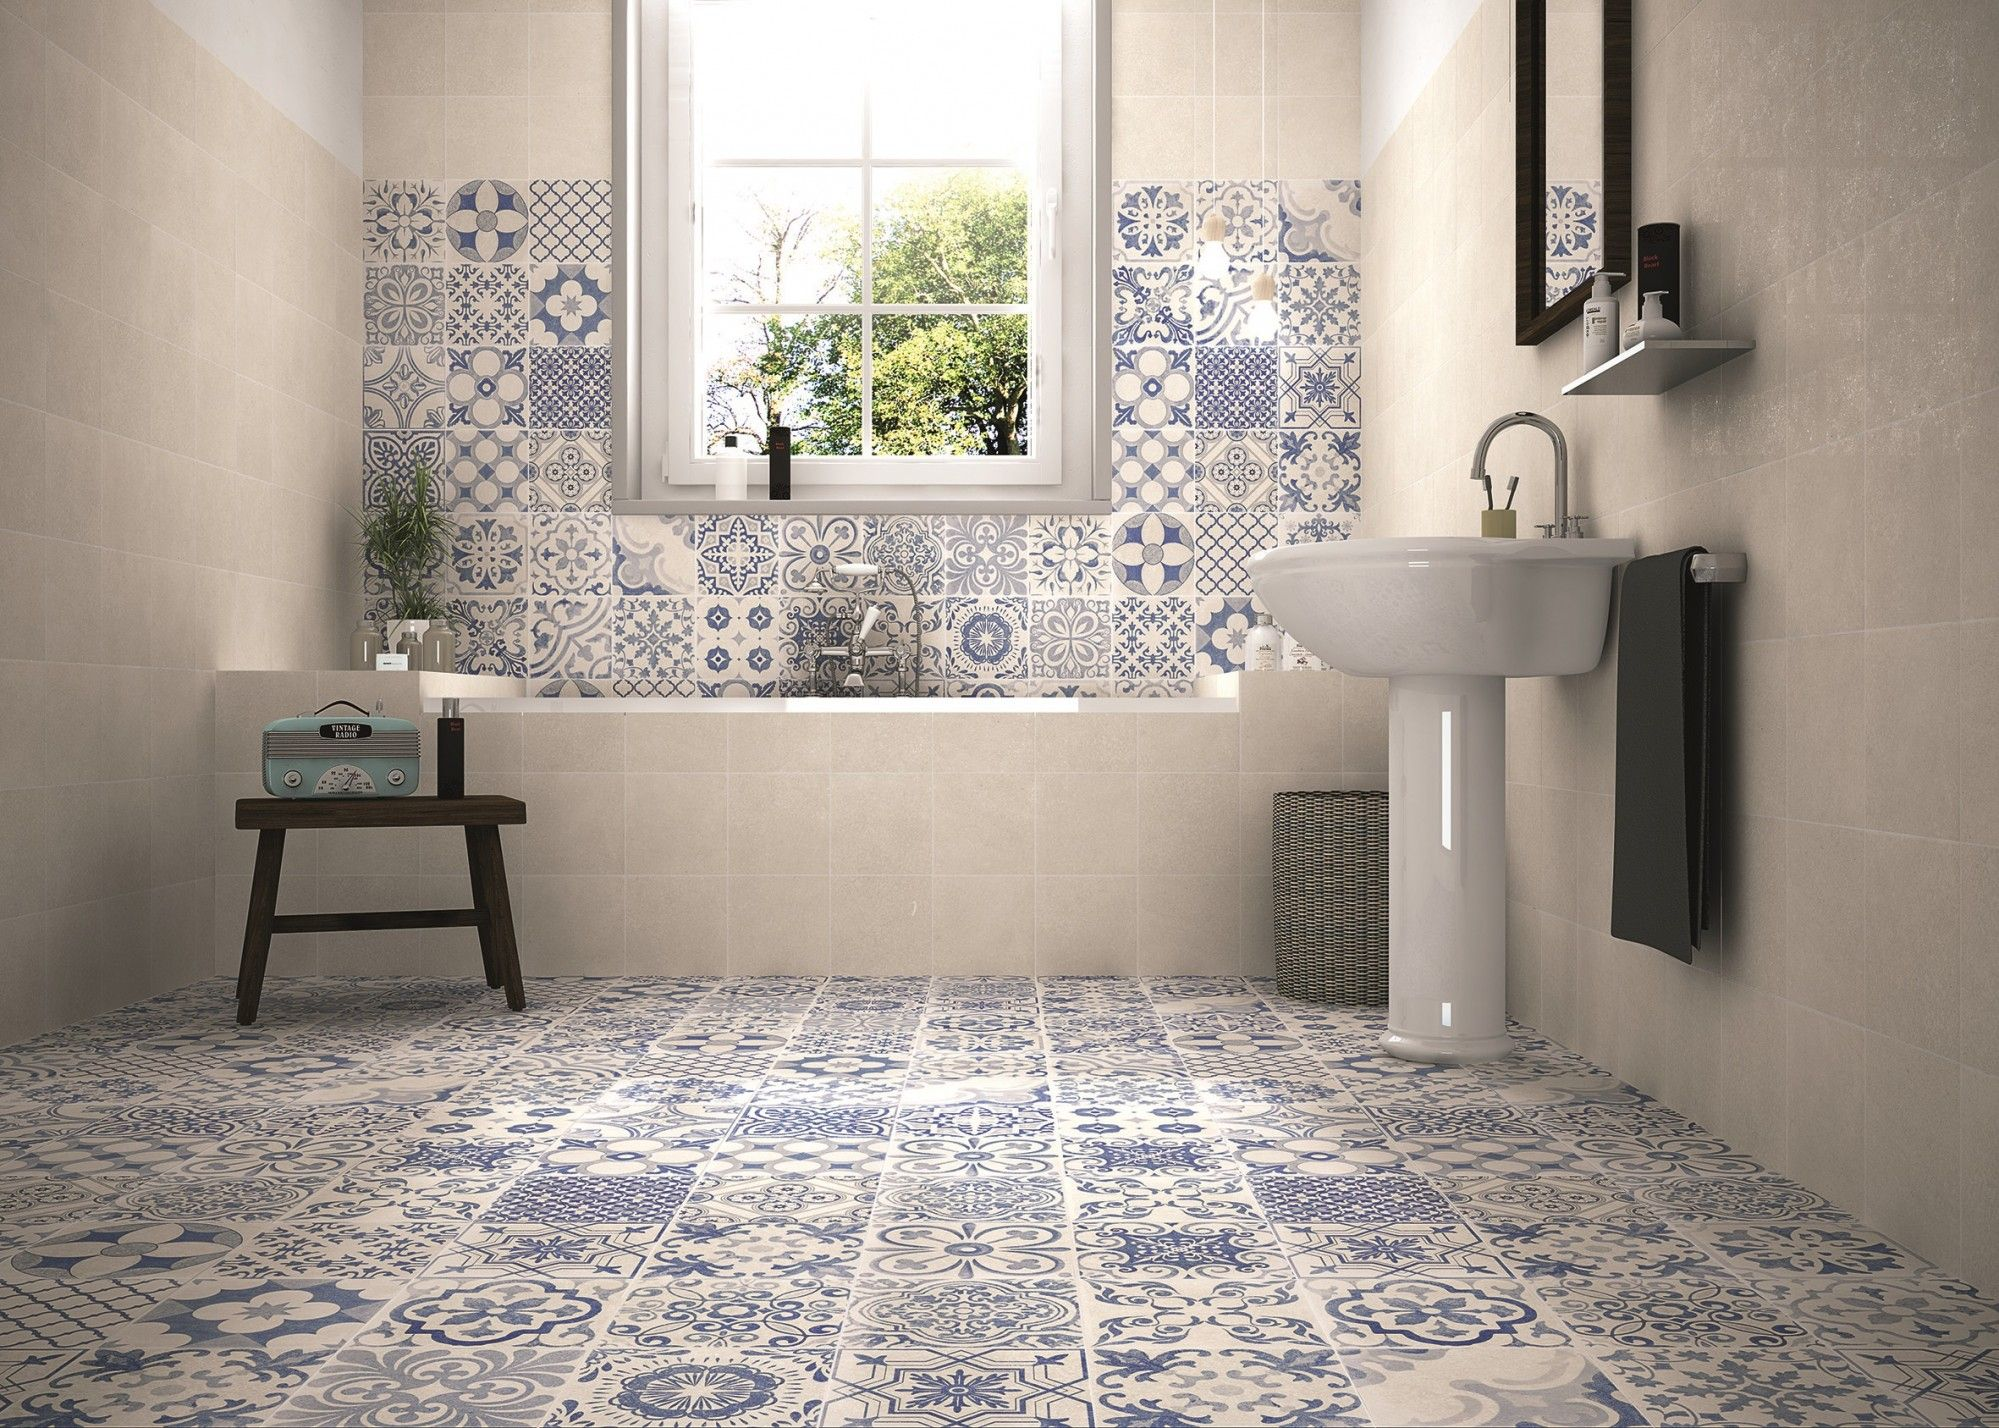 Skyros delft blue wall and floor tile blue walls delft and wall skyros delft blue wall and floor tile dailygadgetfo Images